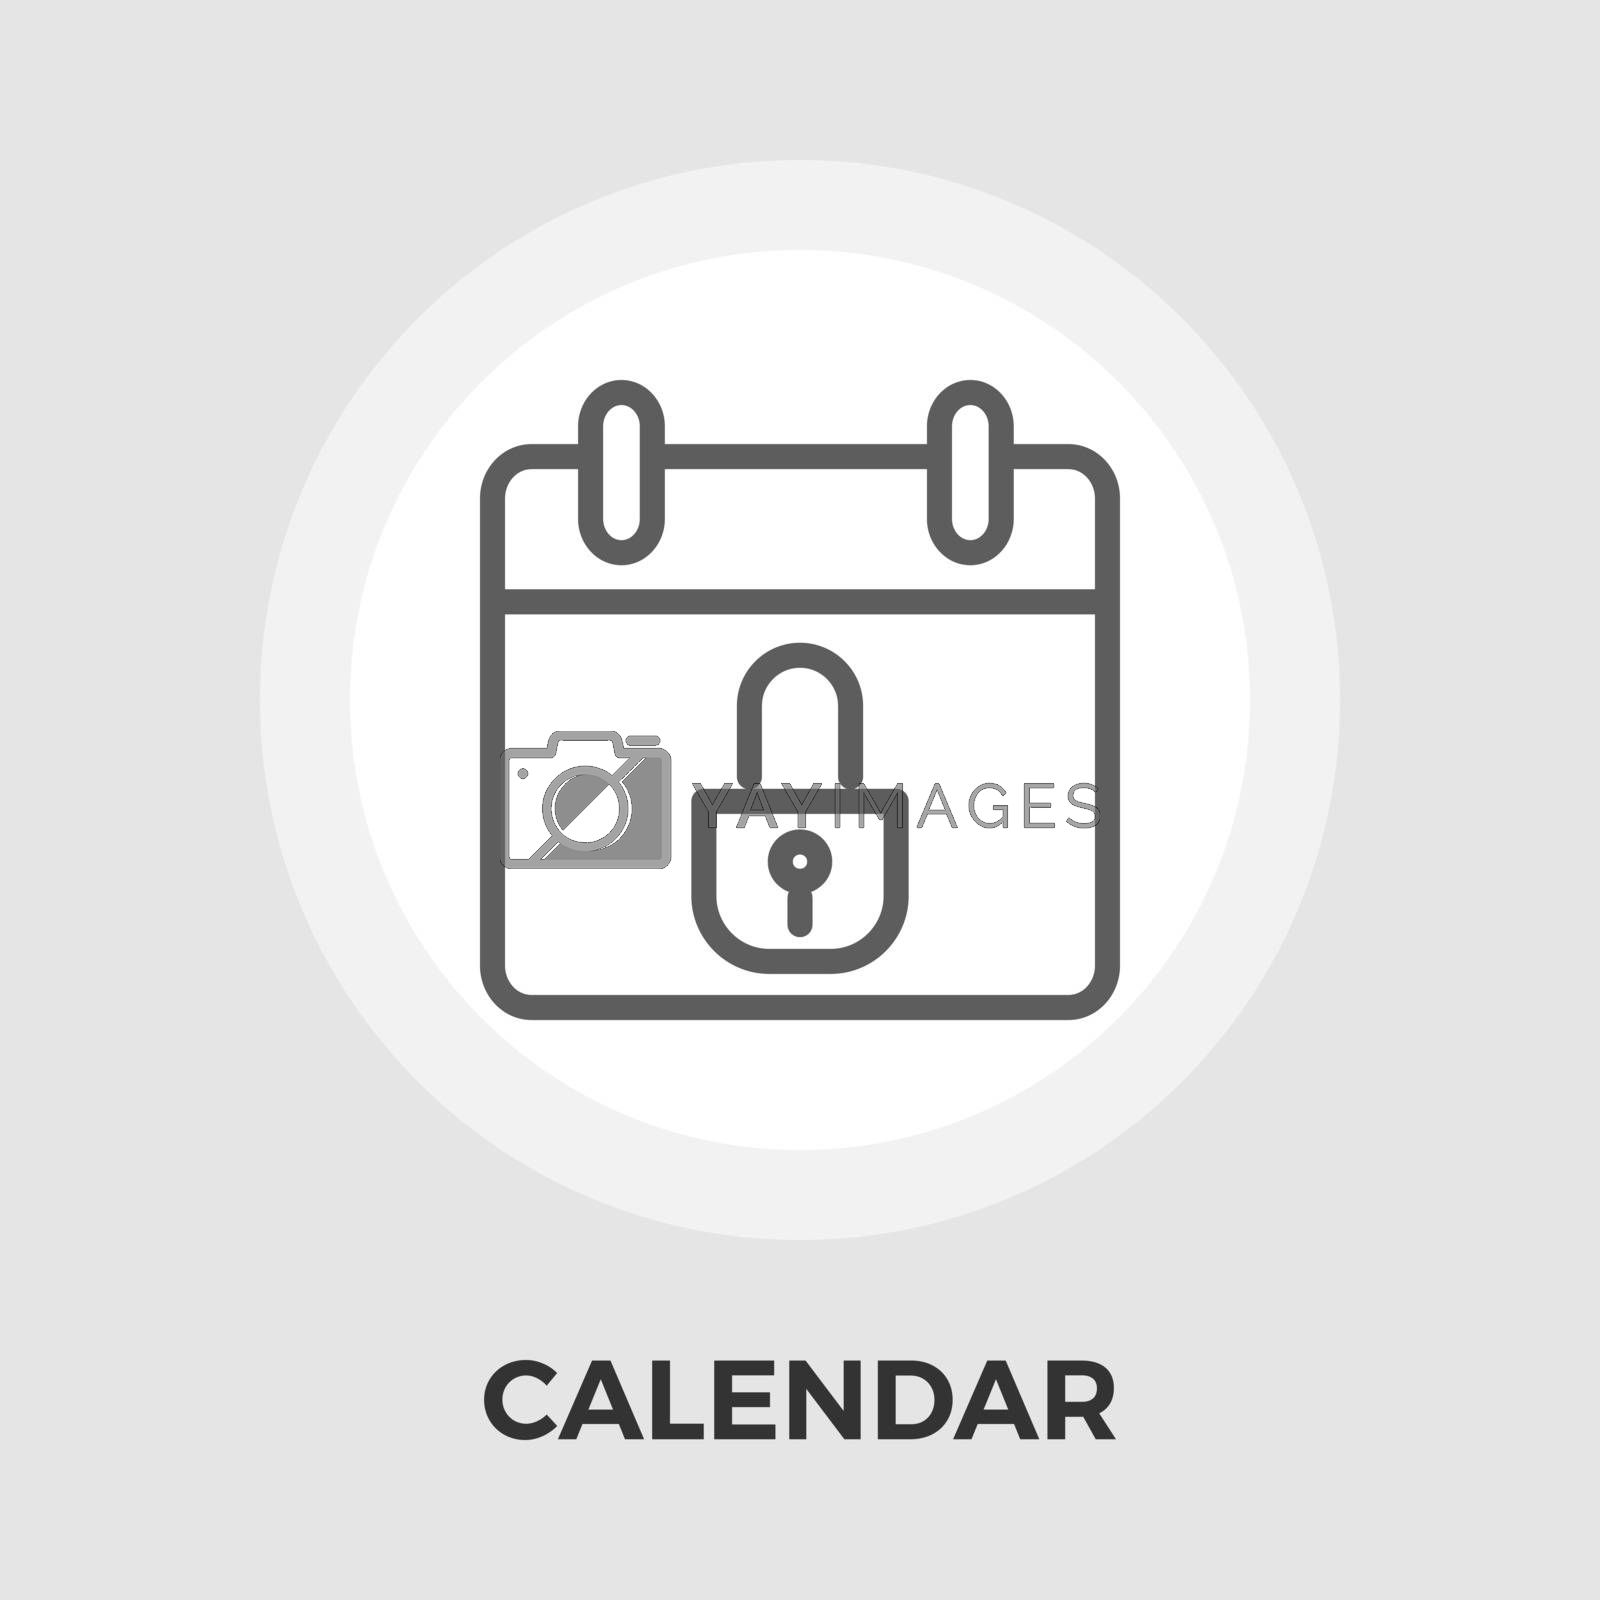 Calendar with padlock icon vector. Flat icon isolated on the white background. Editable EPS file. Vector illustration.